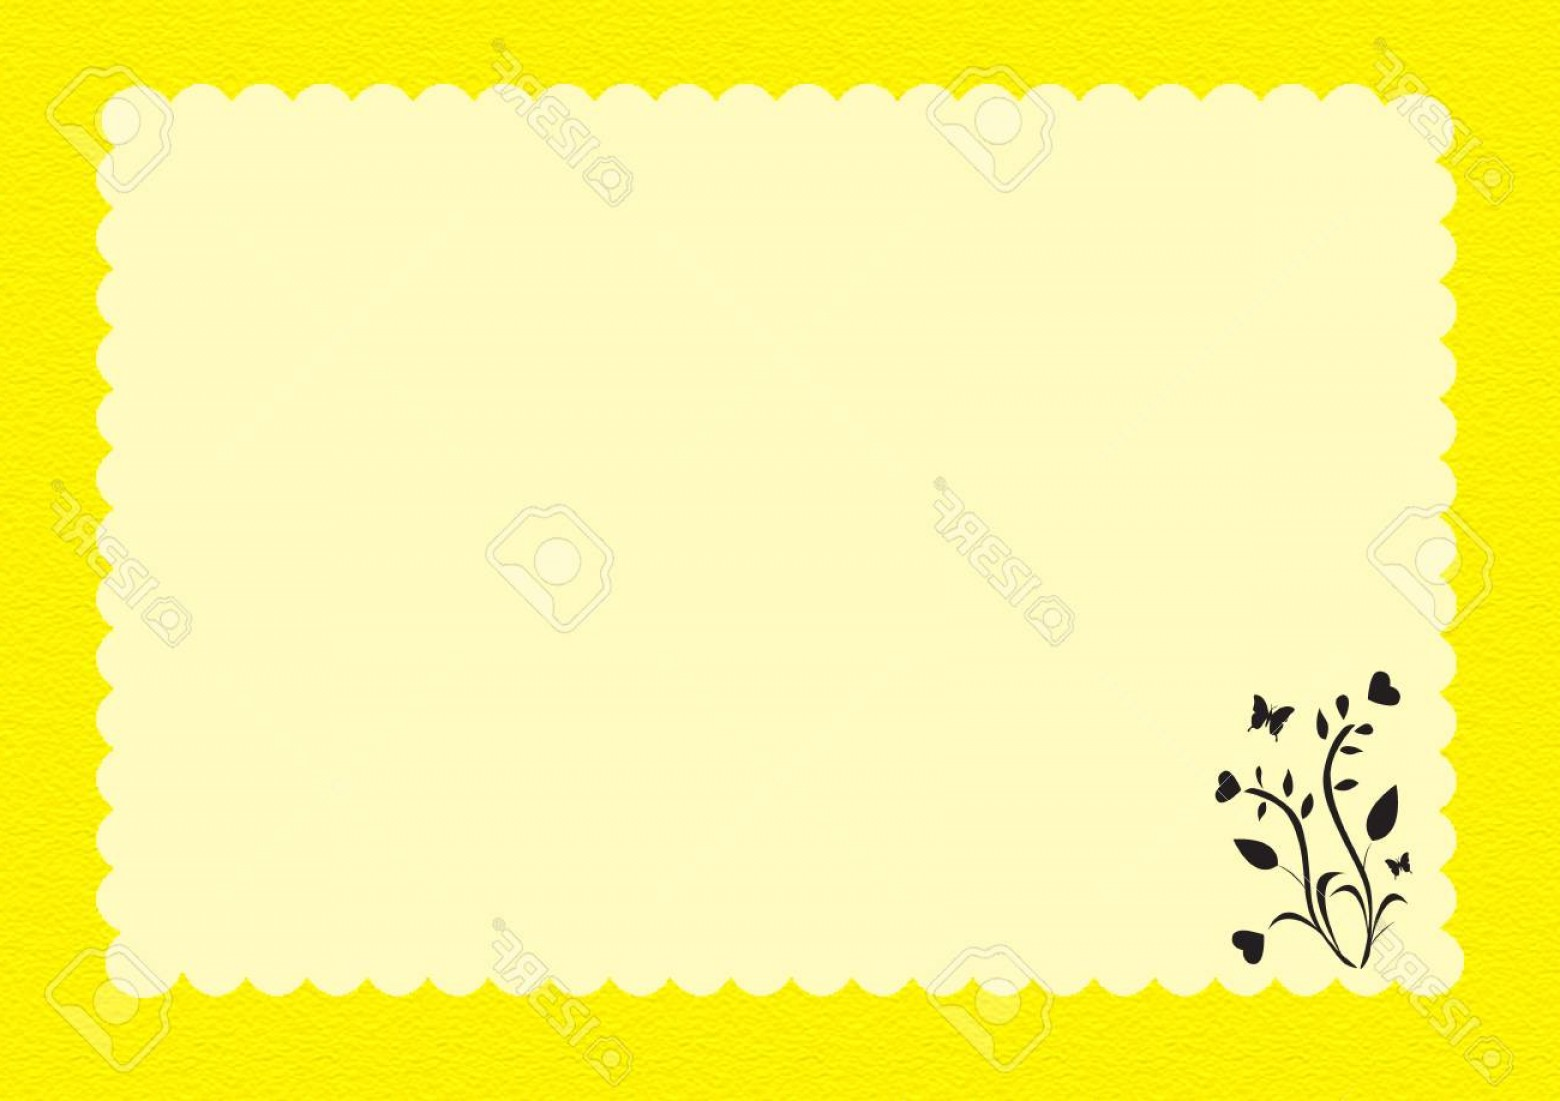 Black Scalloped Border Vector: Photostock Vector Yellow Scalloped Border With Pale Yellow Writing Space And Black Floral At Corner